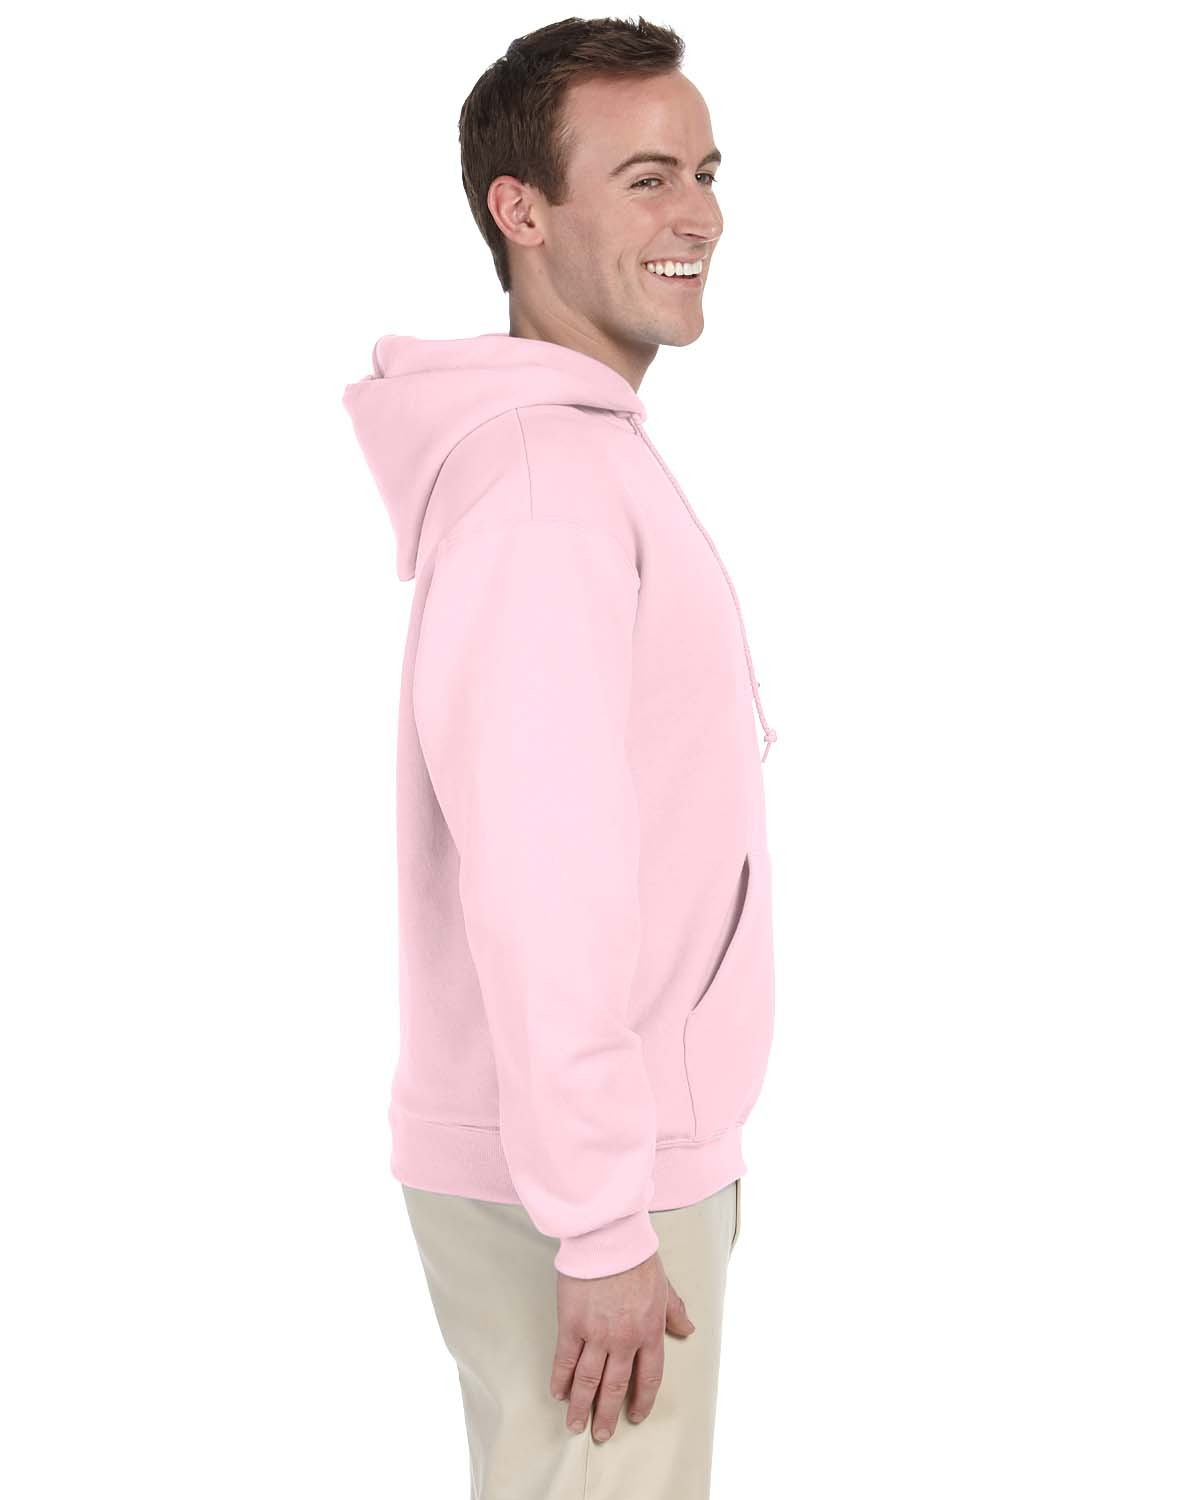 996 Jerzees CLASSIC PINK